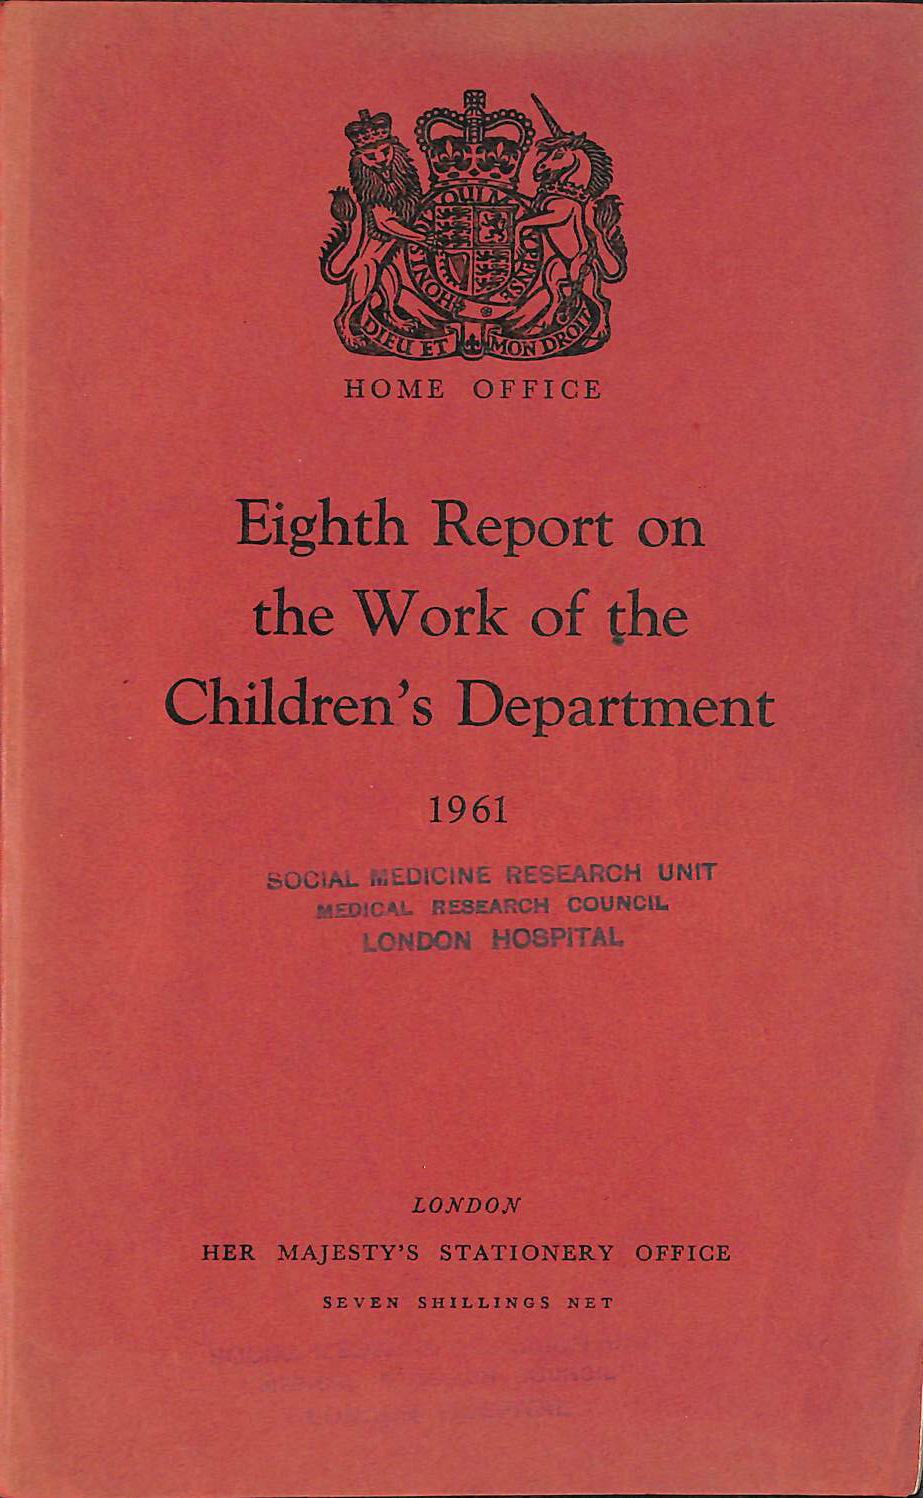 Image for Eighth Report on the Work of the Children's Department